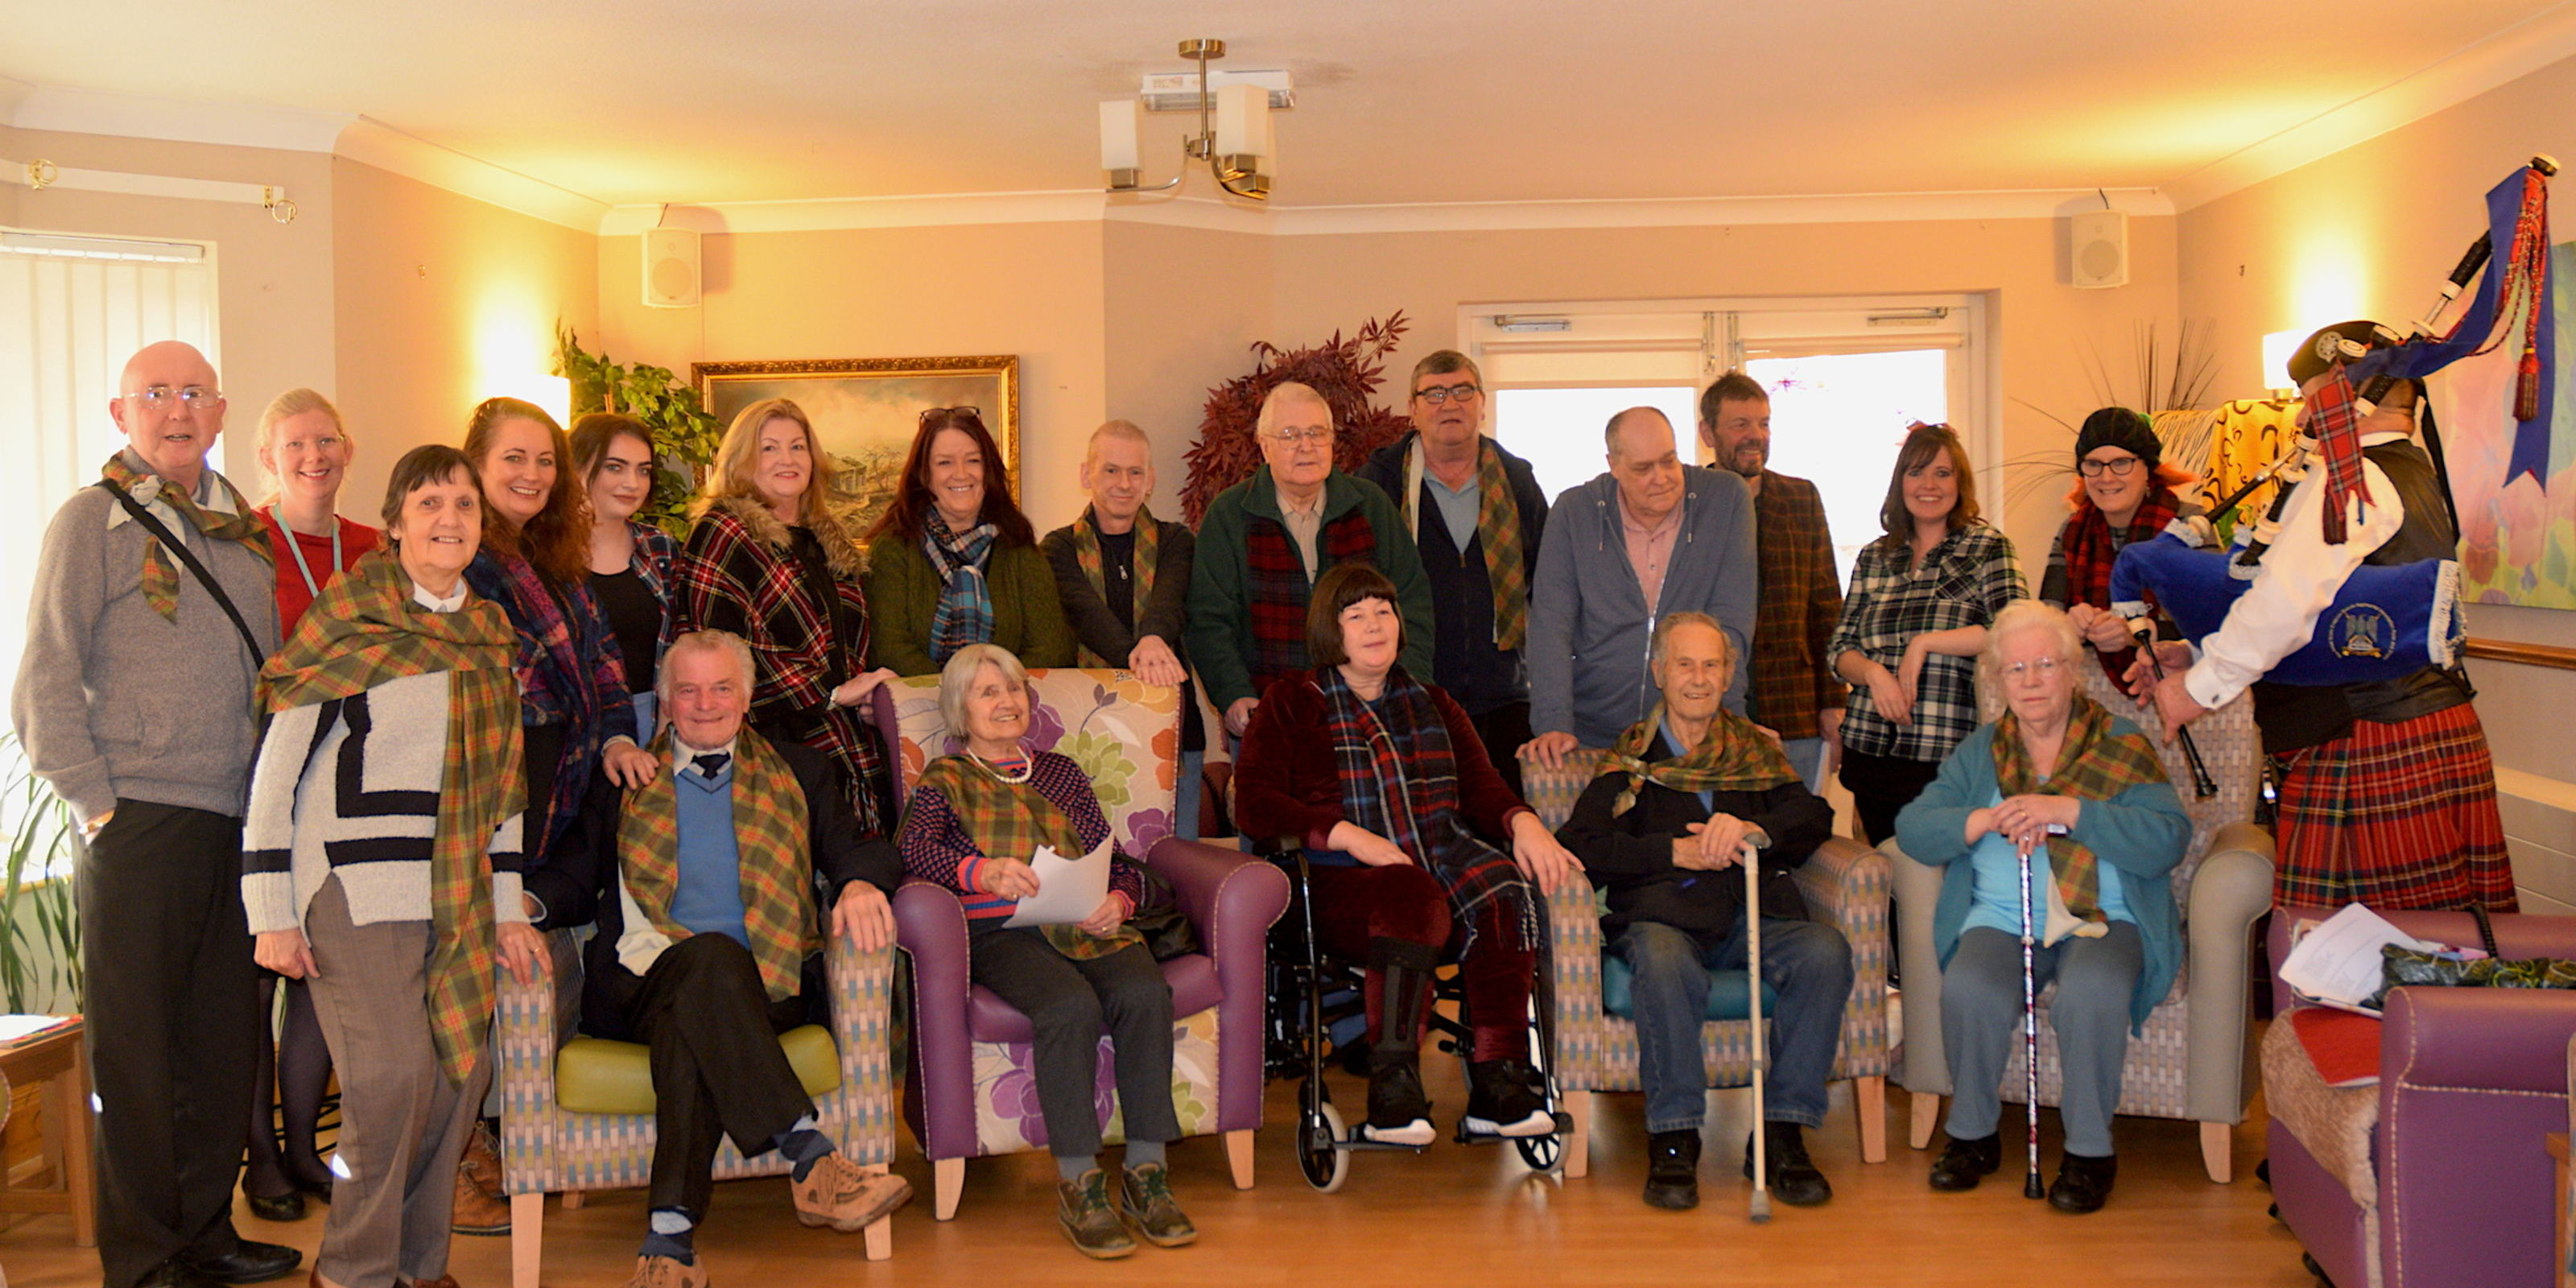 Burns night comes to Pendleside